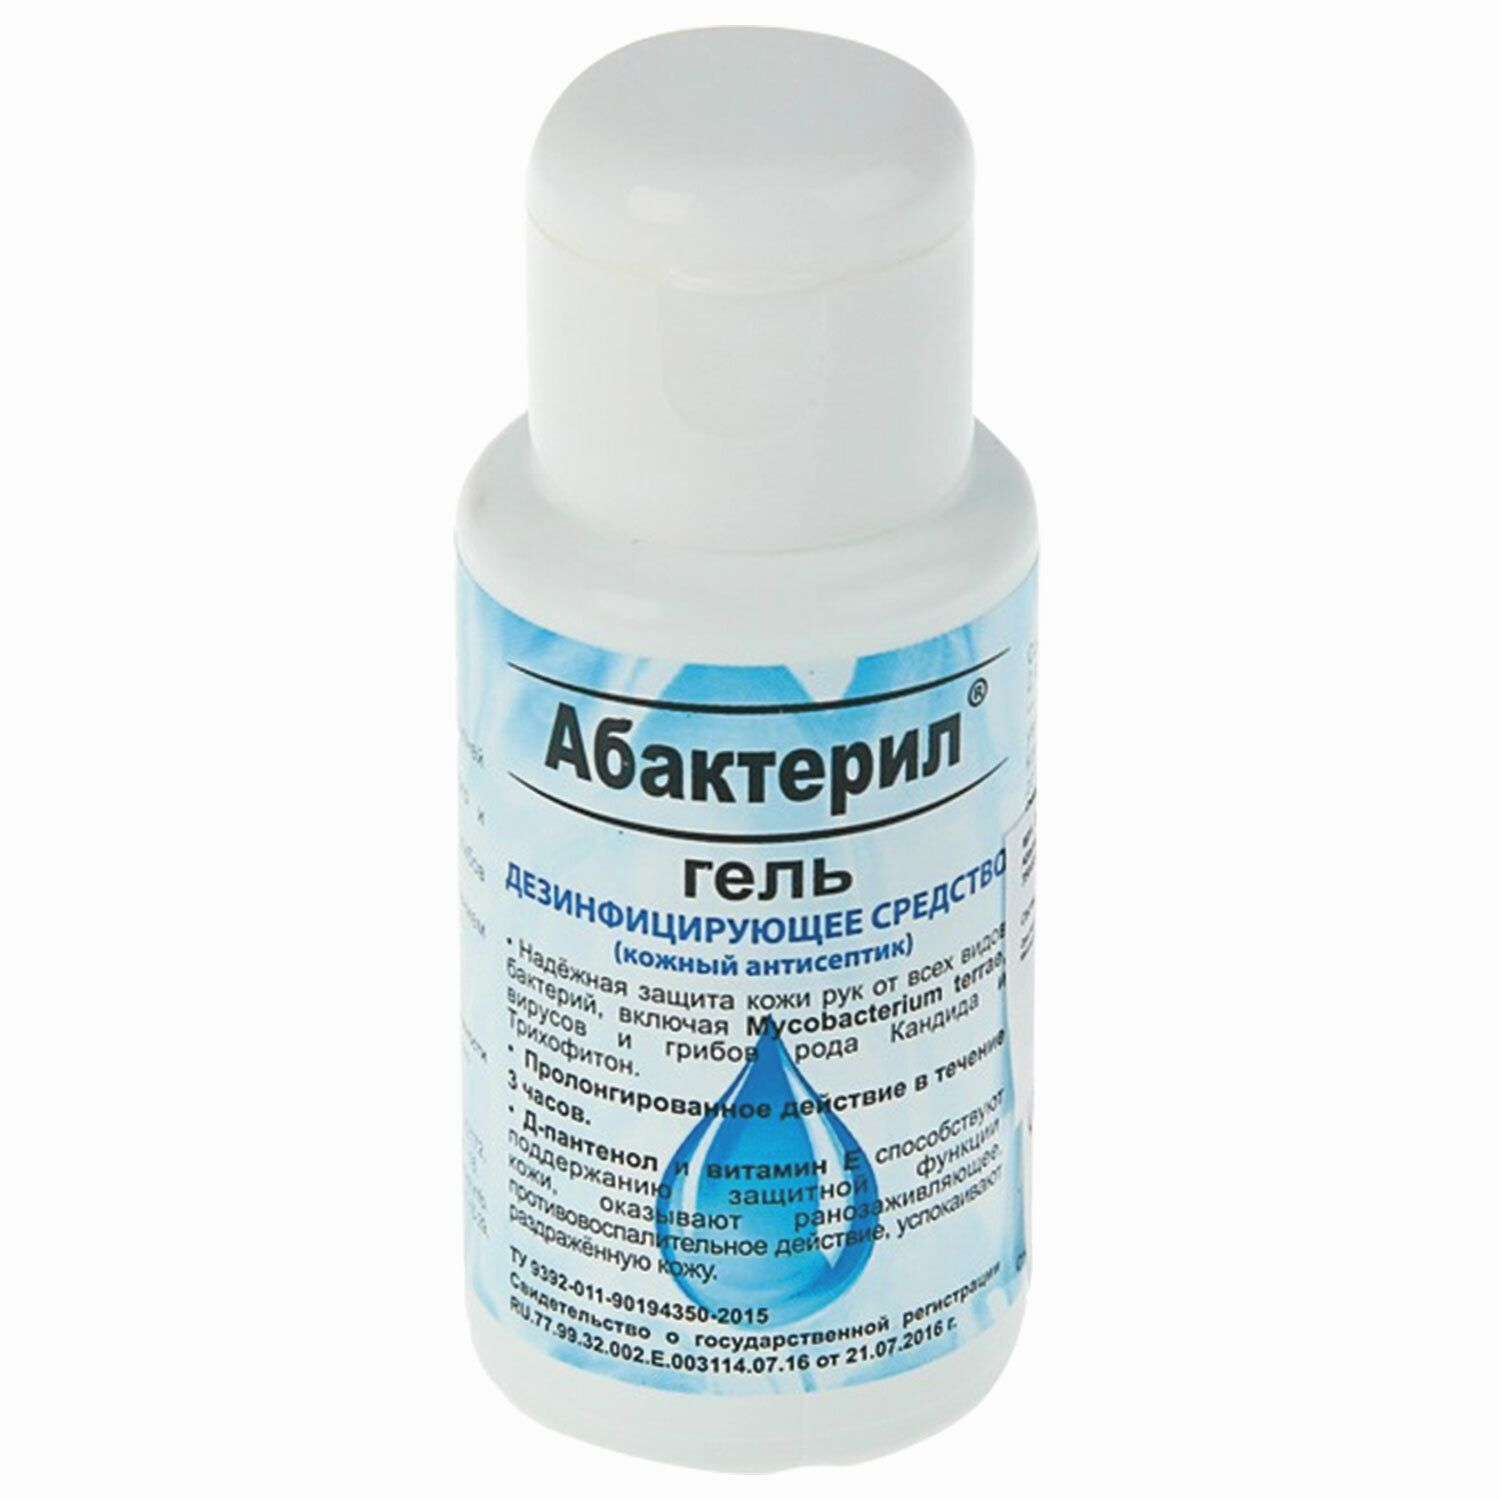 ABACTERIL / Alcohol-based disinfectant skin antiseptic (60%) - GEL on a water-alcohol basis, flip-top cap, 50 ml